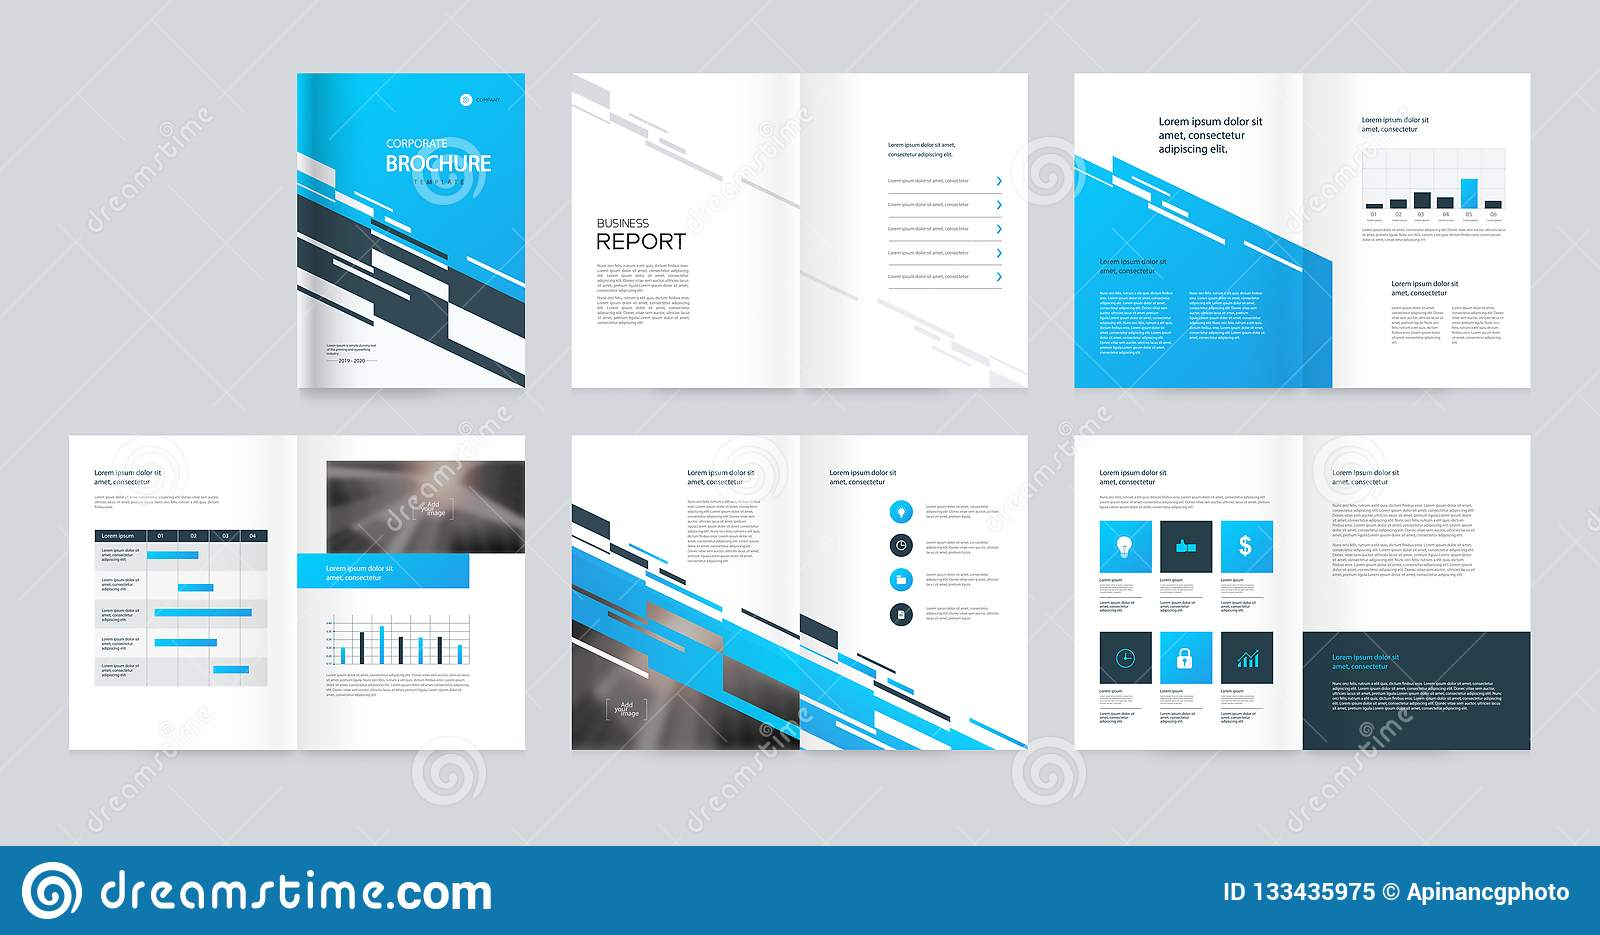 Template Layout Design With Cover Page For Company Profile  Annual Report   Brochures Proposal